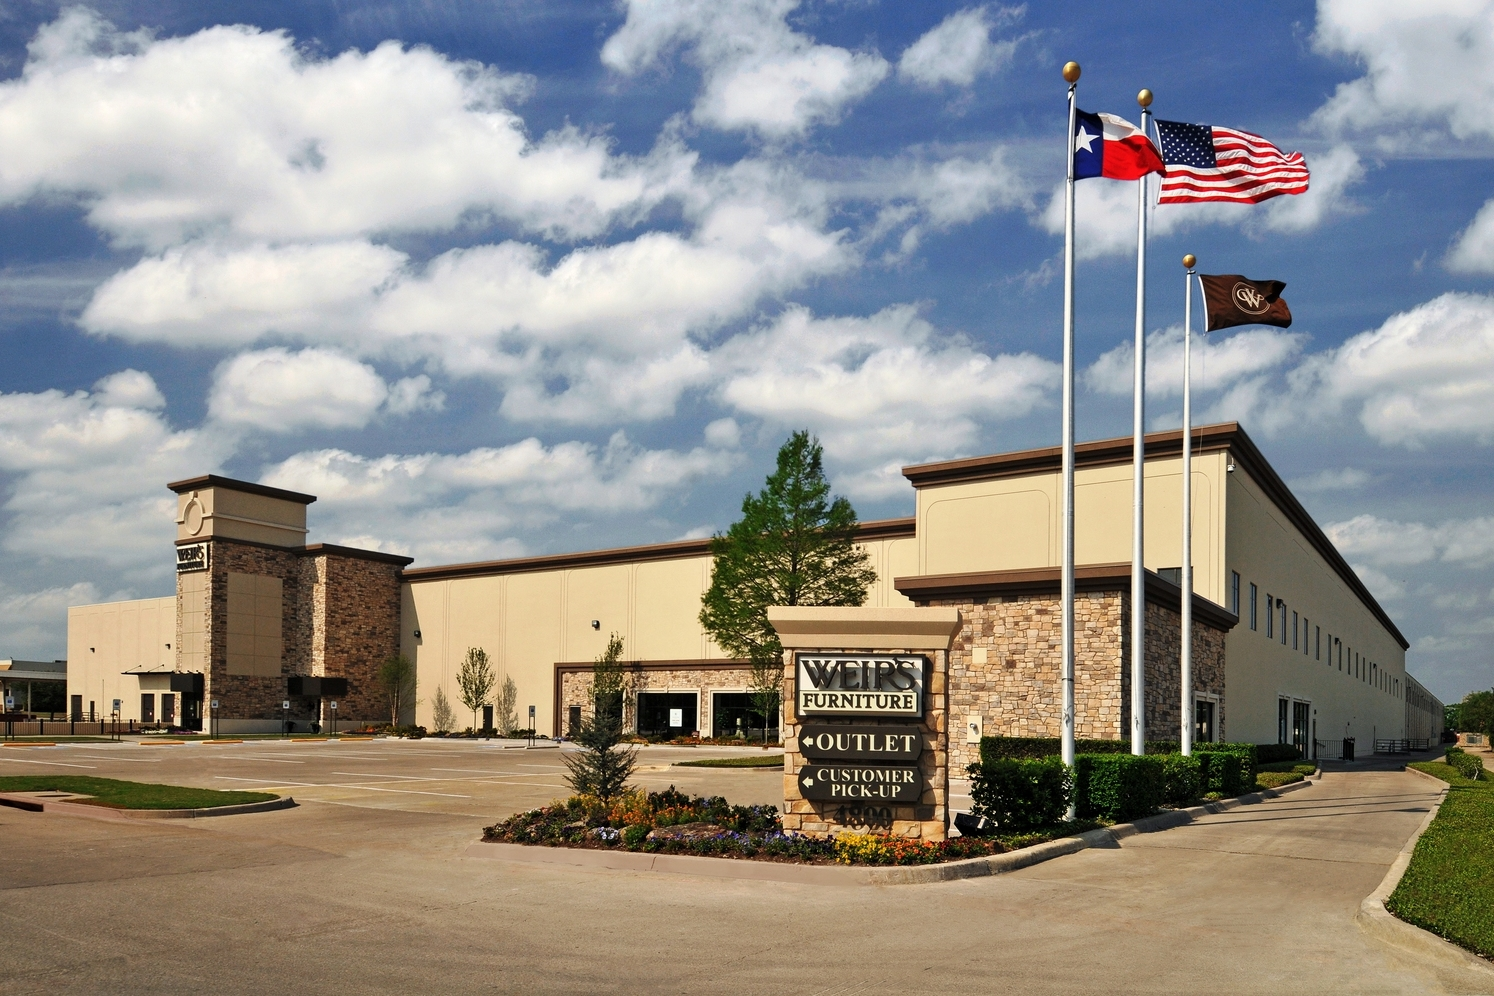 Weir's Furniture  |  Farmers Branch, TX   General Contractor:   Raymond Construction